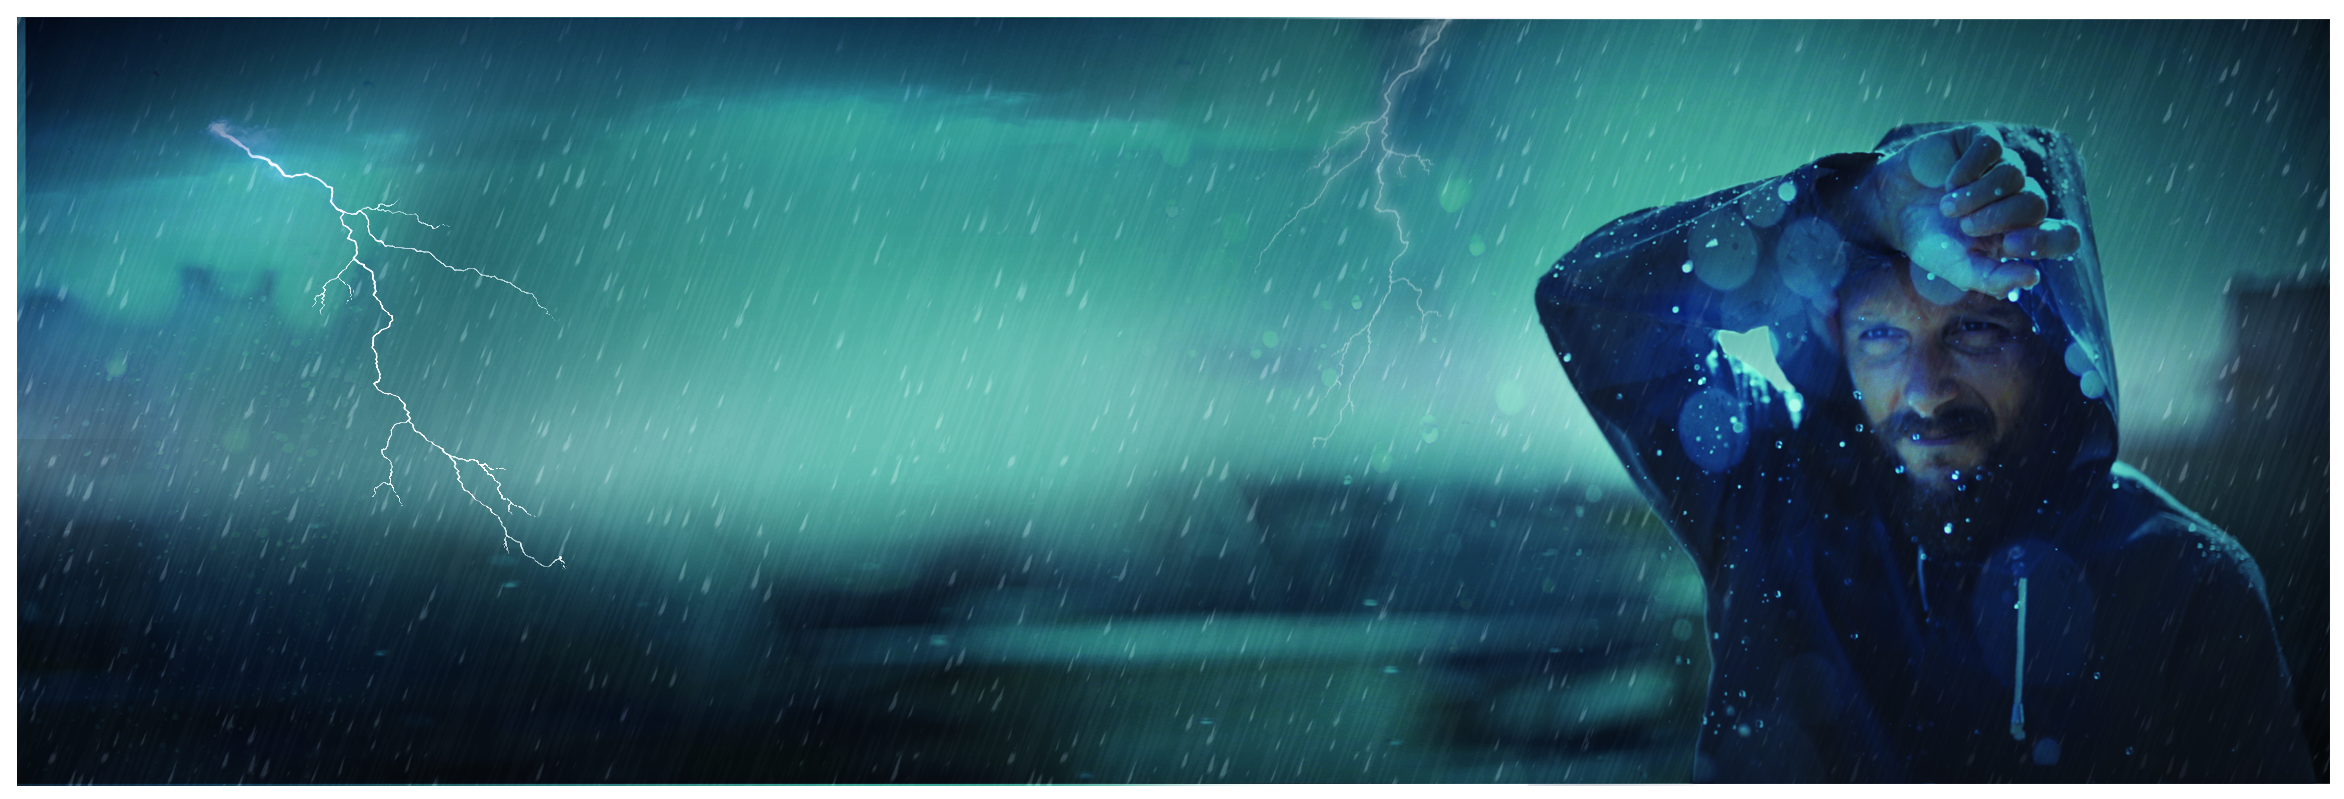 Storm_kit_Trailer_Designs_Example_121917-2_RAIN-NoLightning_CC